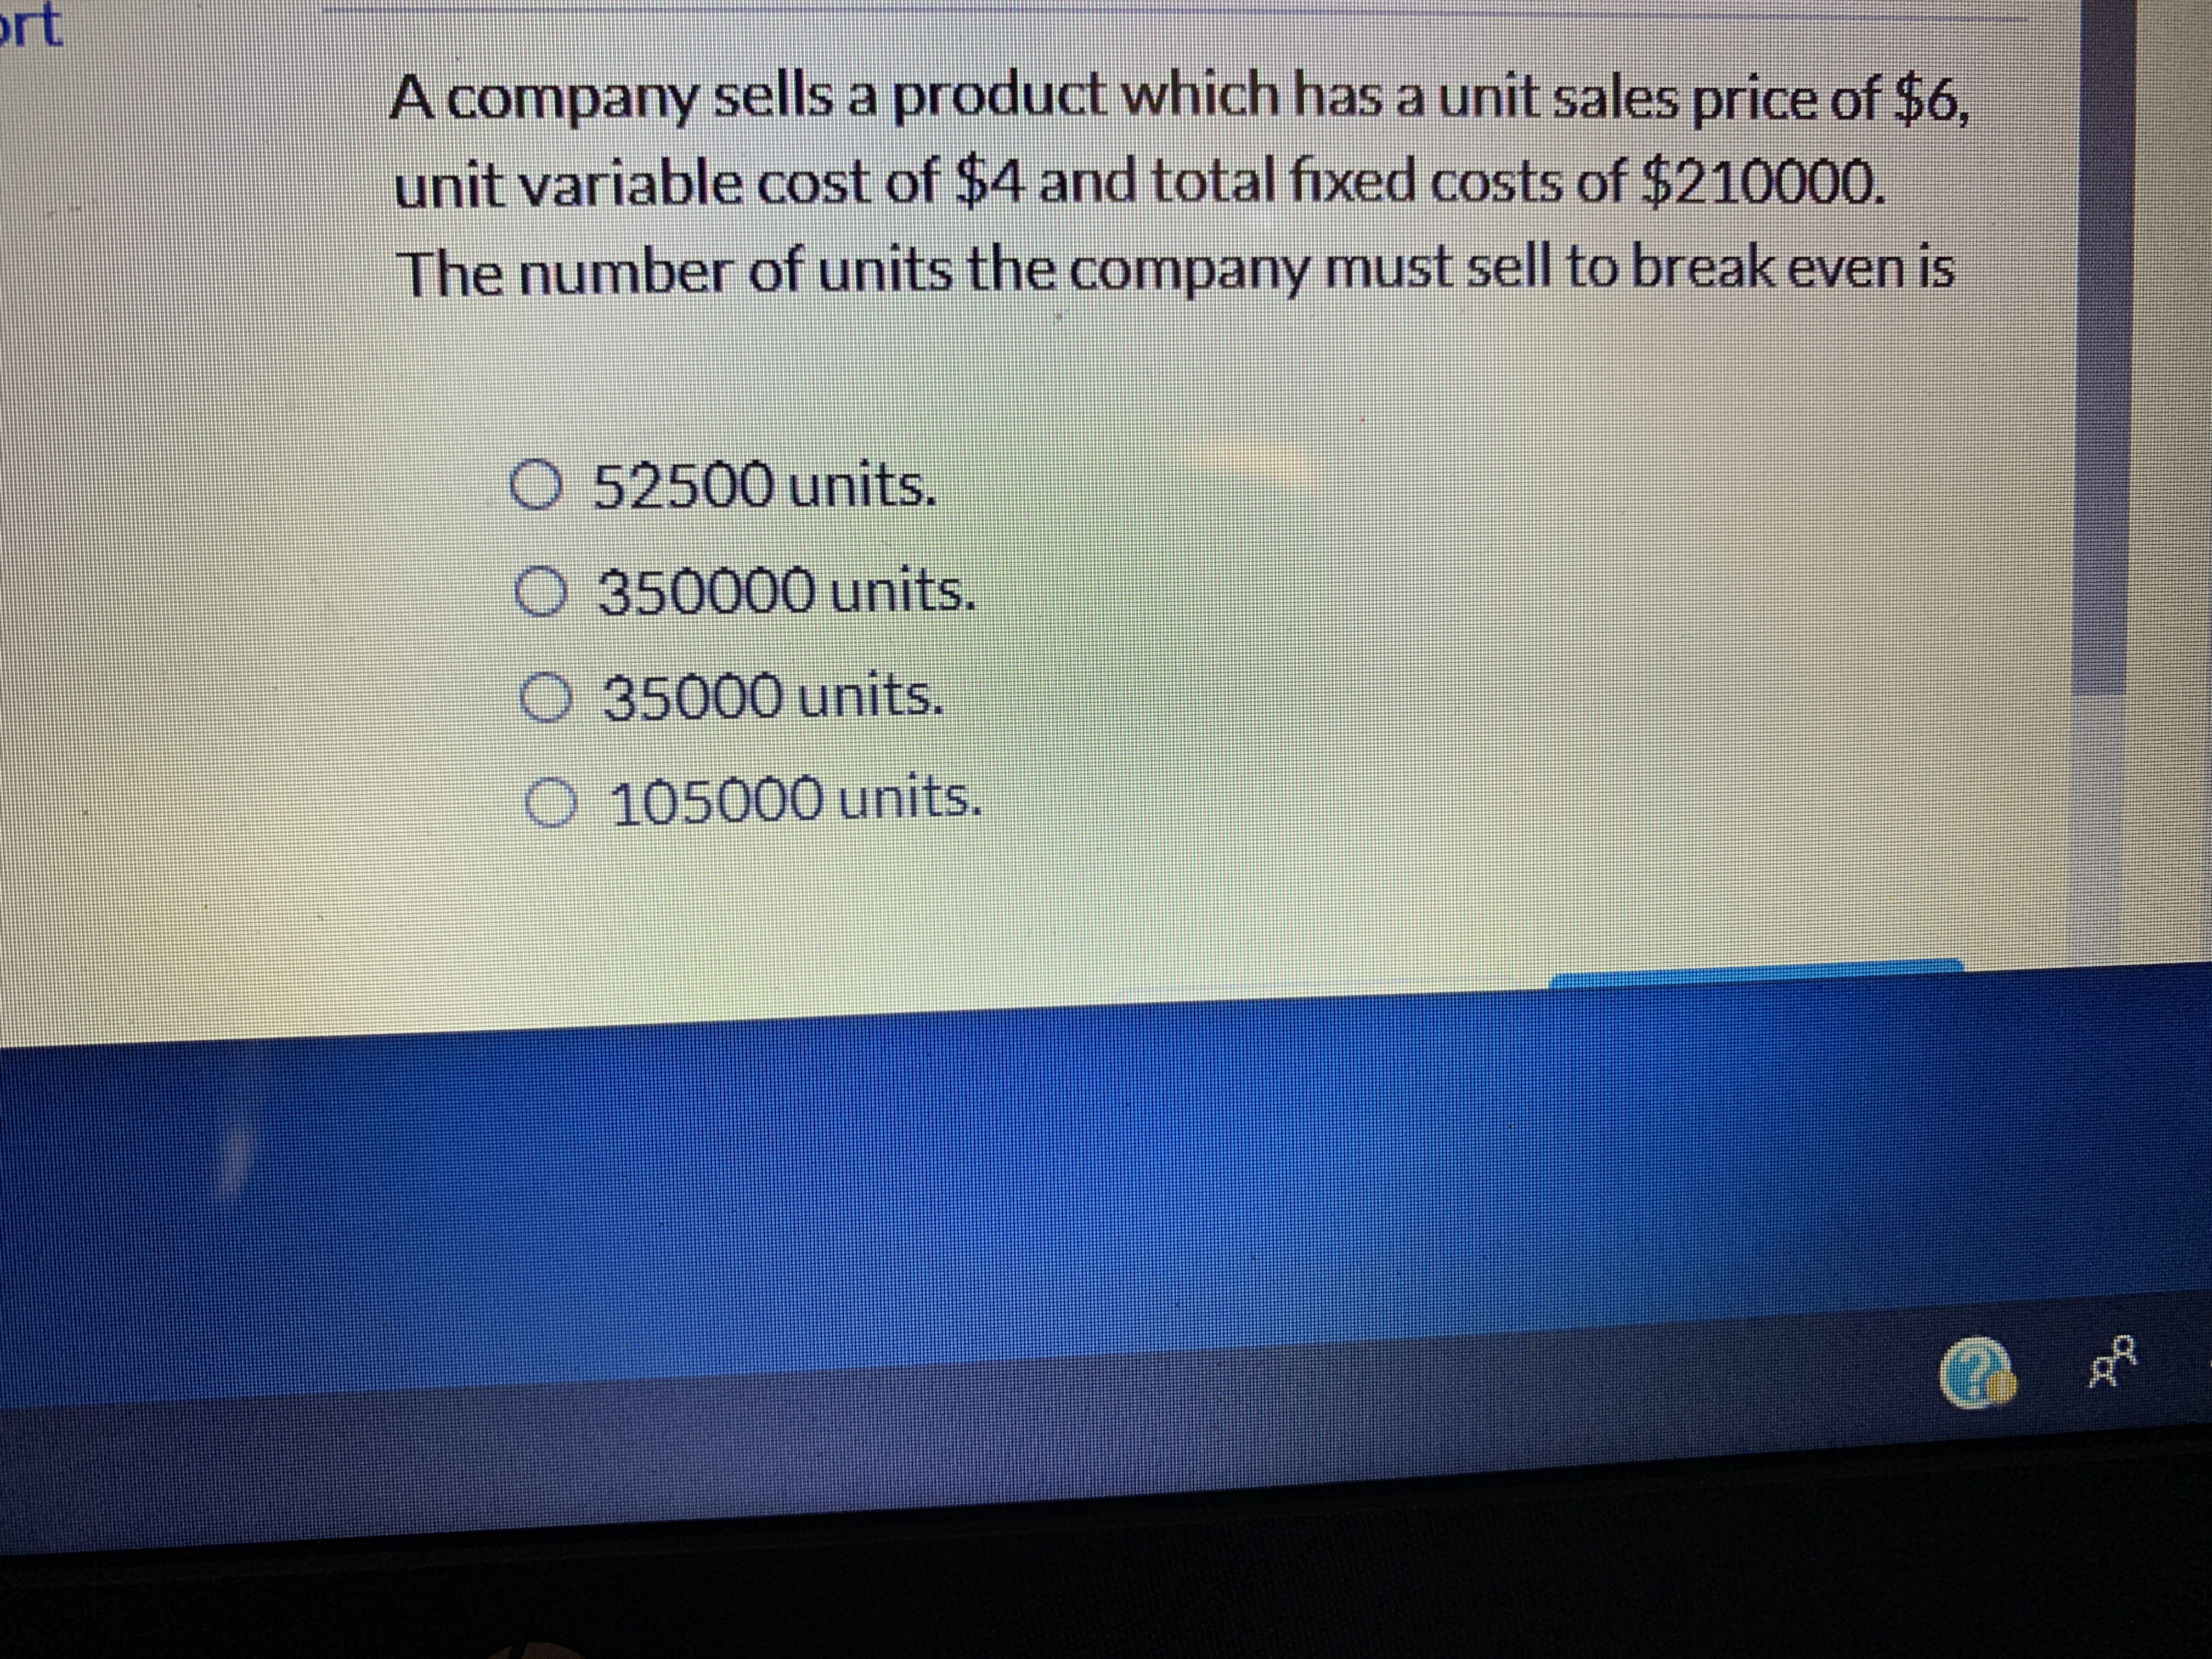 rt A company sells a product which has a unit sales price of $6, unit variable cost of $4 and total fixed costs of $210000. The number of units the company must sell to break even is O 52500 units. 350000 units. 35000 units O 105000 units.